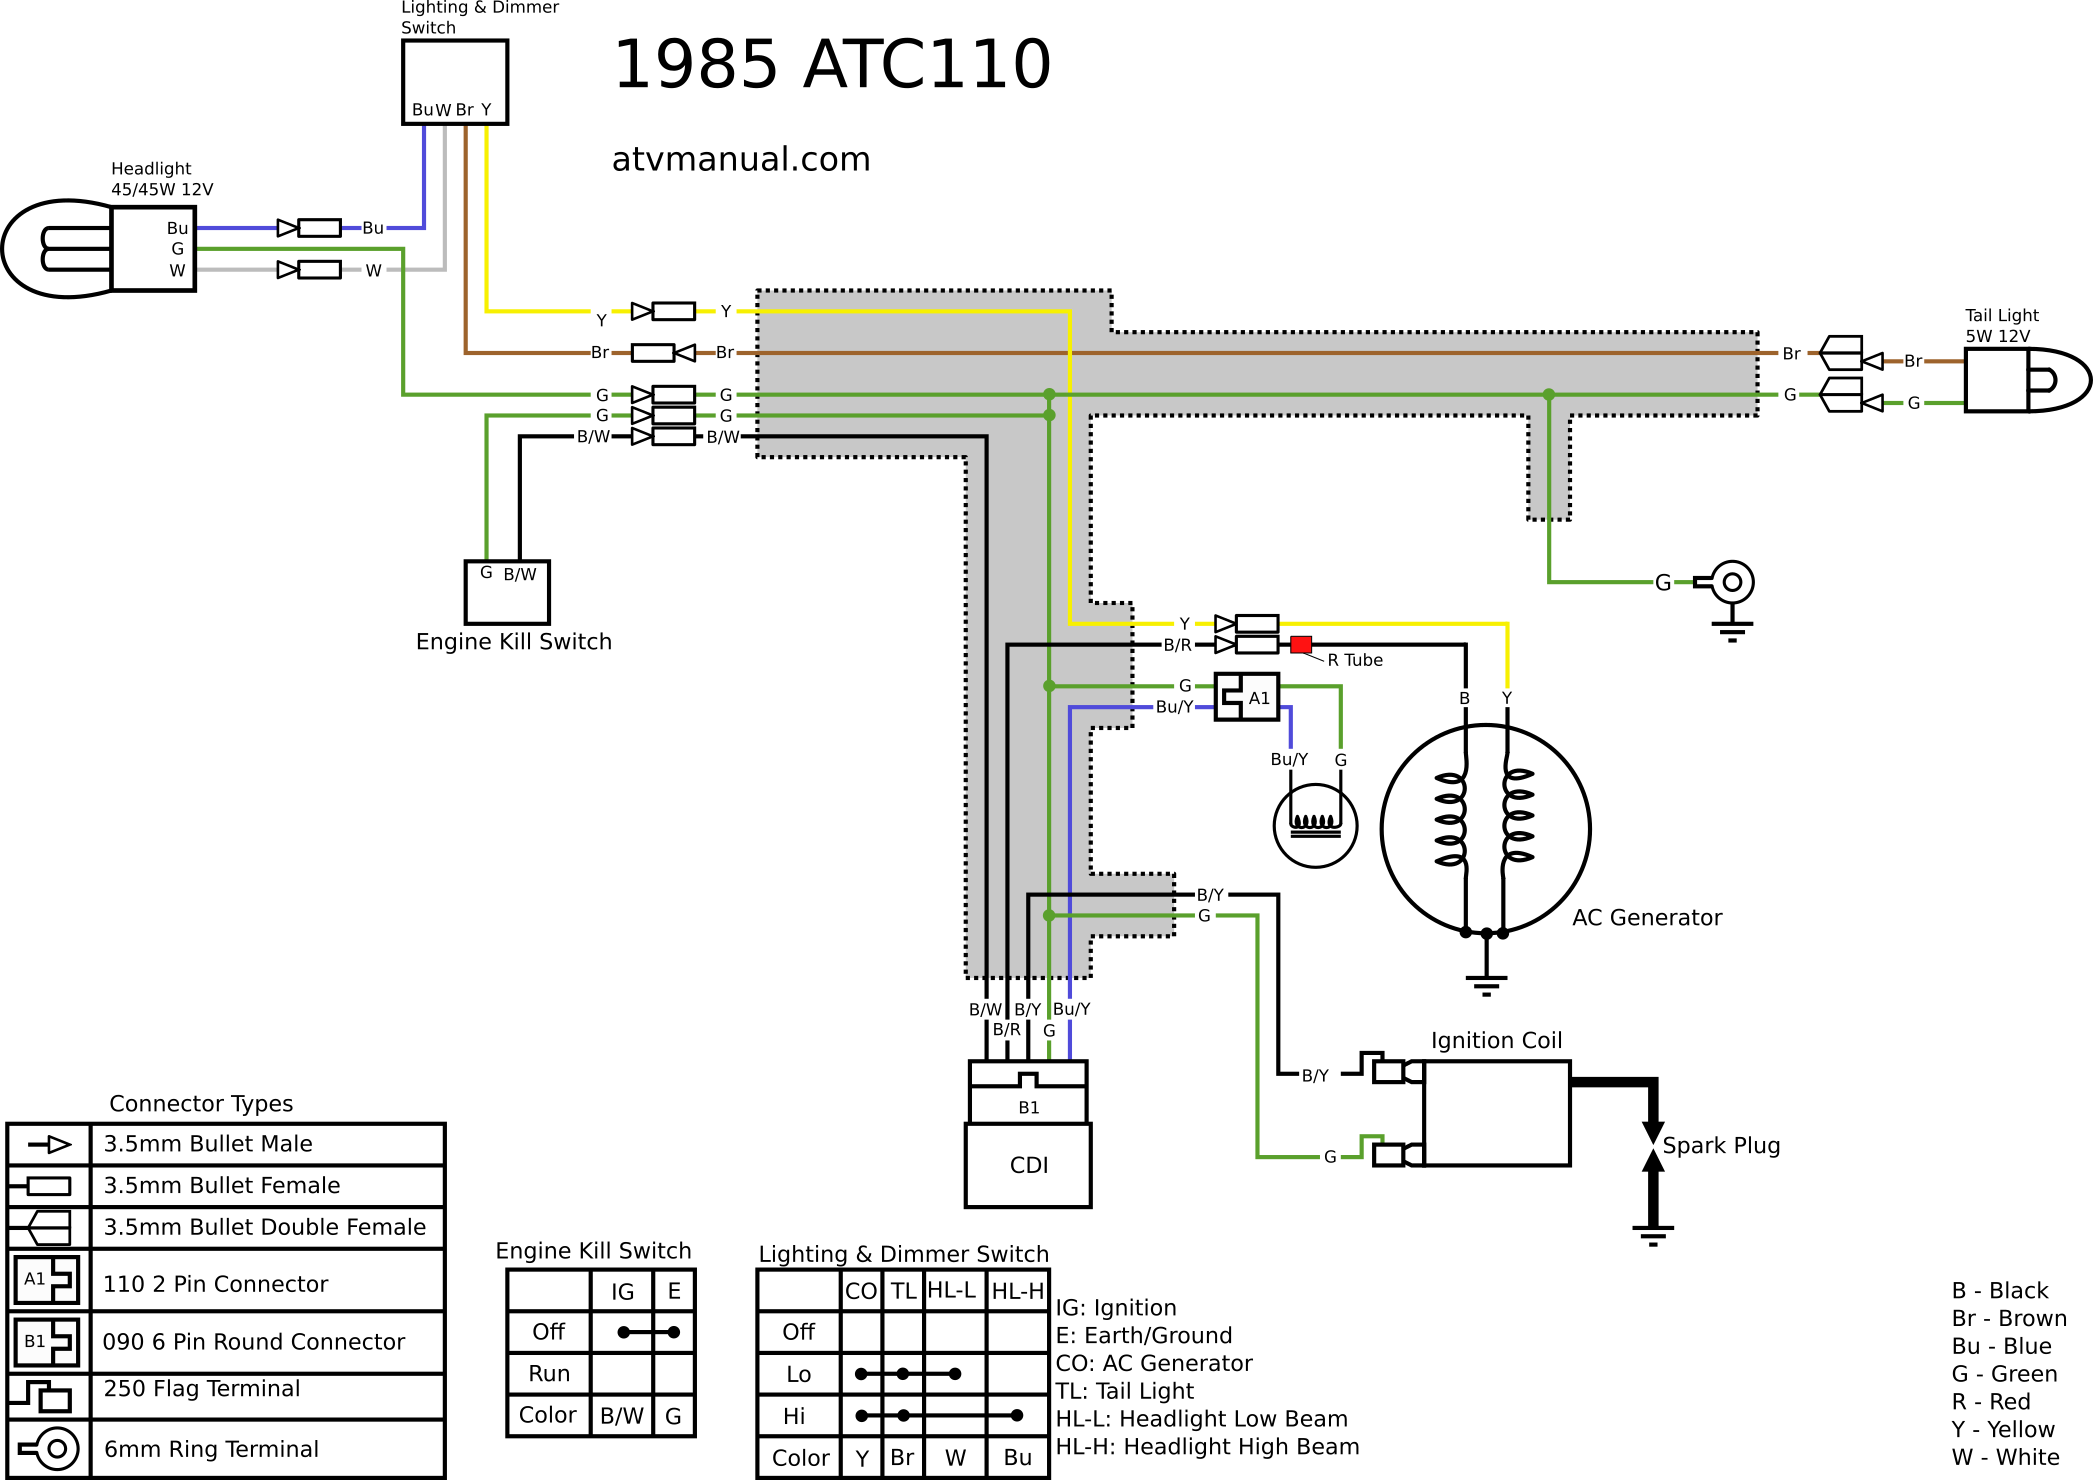 [SCHEMATICS_4JK]  1985 ATC110 Wire Diagram | AtvManual | Wiring A 110 Schematic |  | ATV Manual